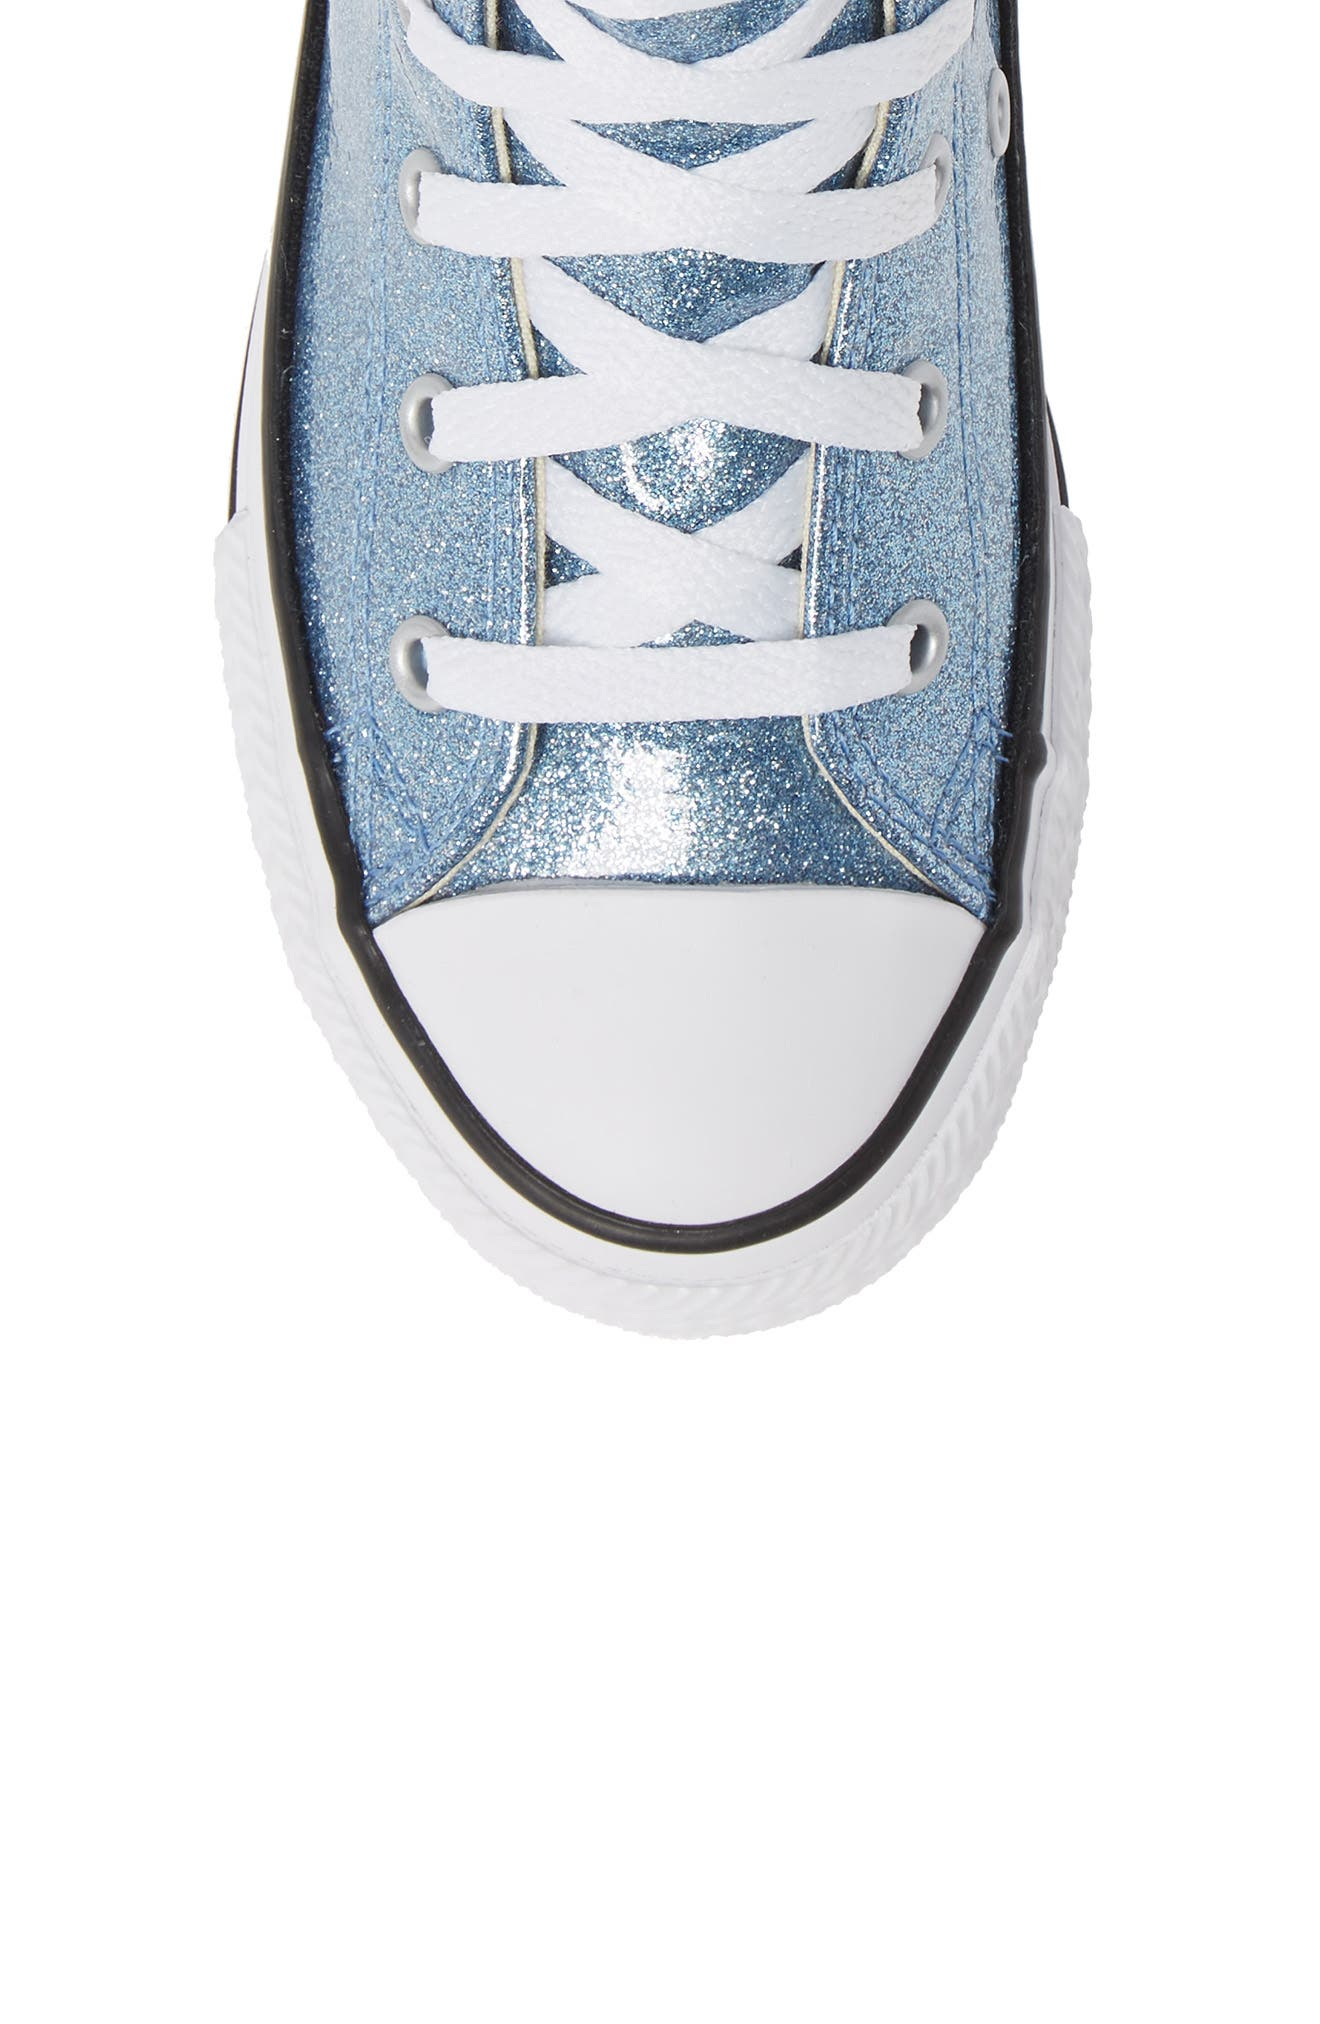 All Star<sup>®</sup> Glitter High Top Sneaker,                             Alternate thumbnail 5, color,                             Light Blue